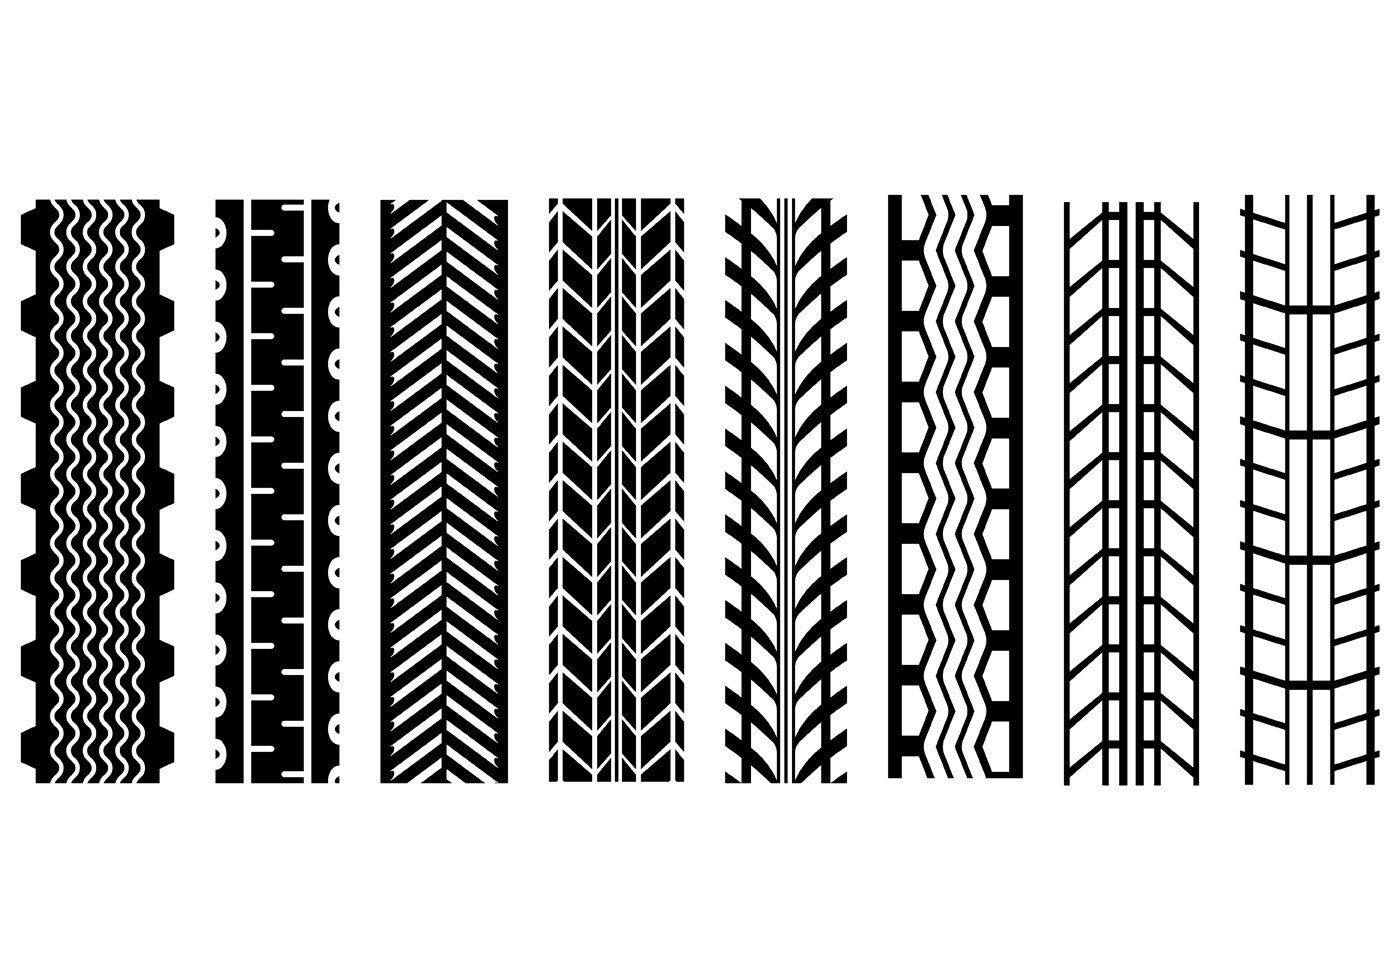 1400x980 Best Free Tire Tread Vector Art Image Collection